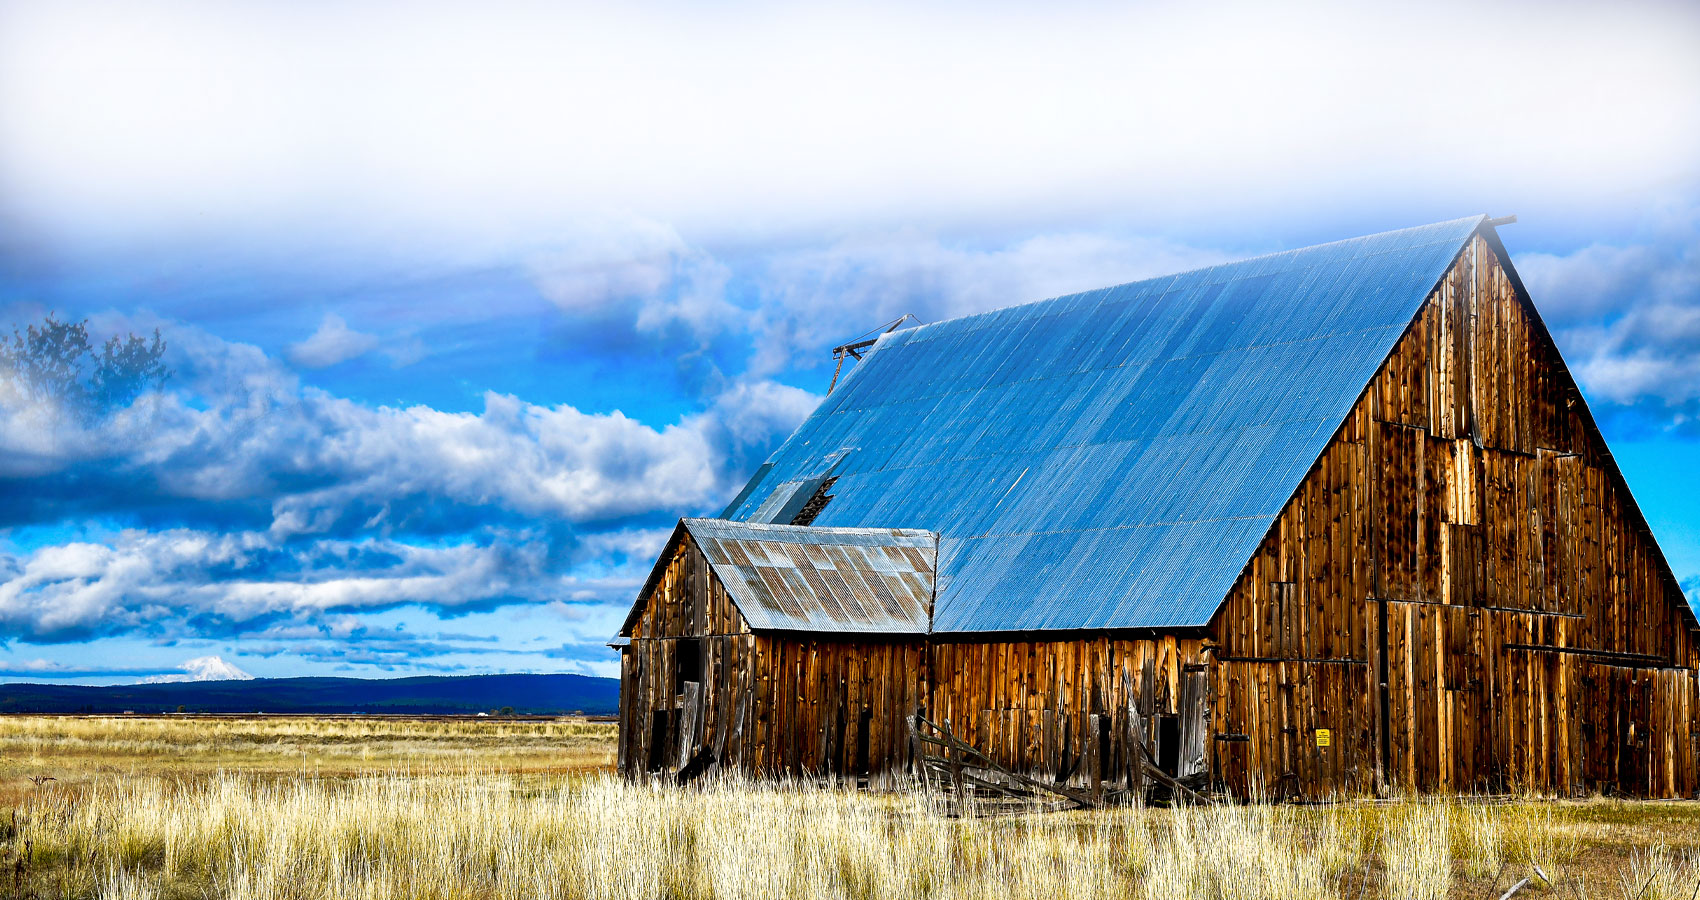 This is a picture of a barn in field with mountains in the background.